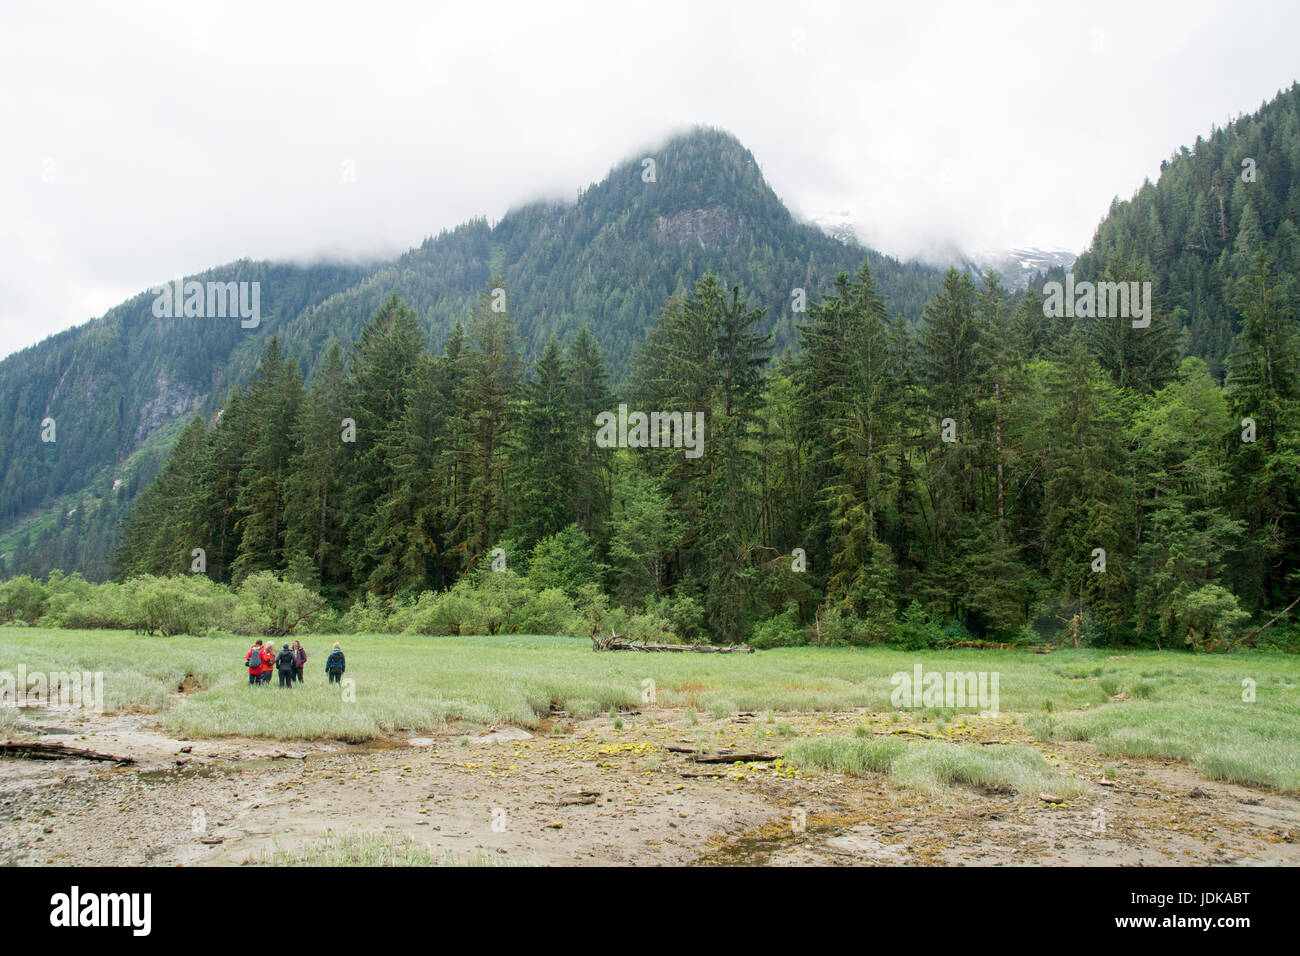 A nature eco-tour in a coastal estuary of the Great Bear Rainforest, British Columbia, Canada. - Stock Image